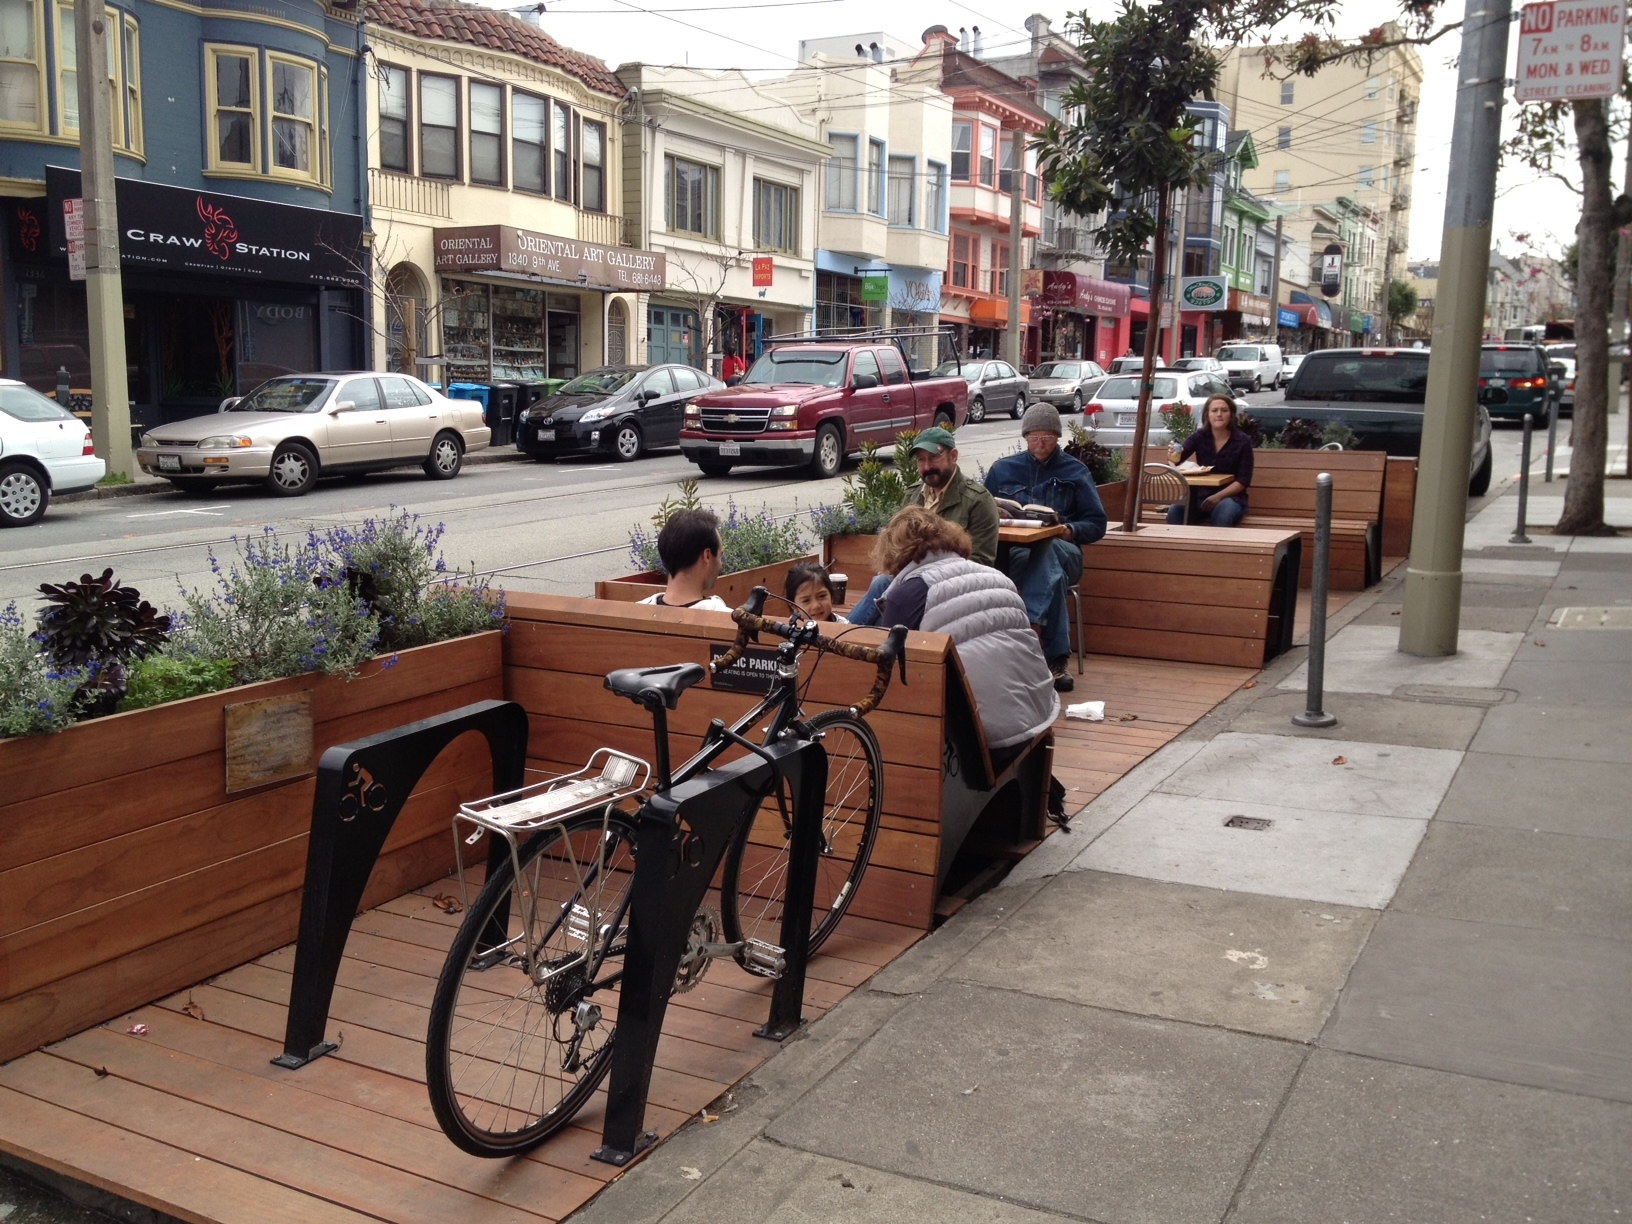 Public Space in Your Community